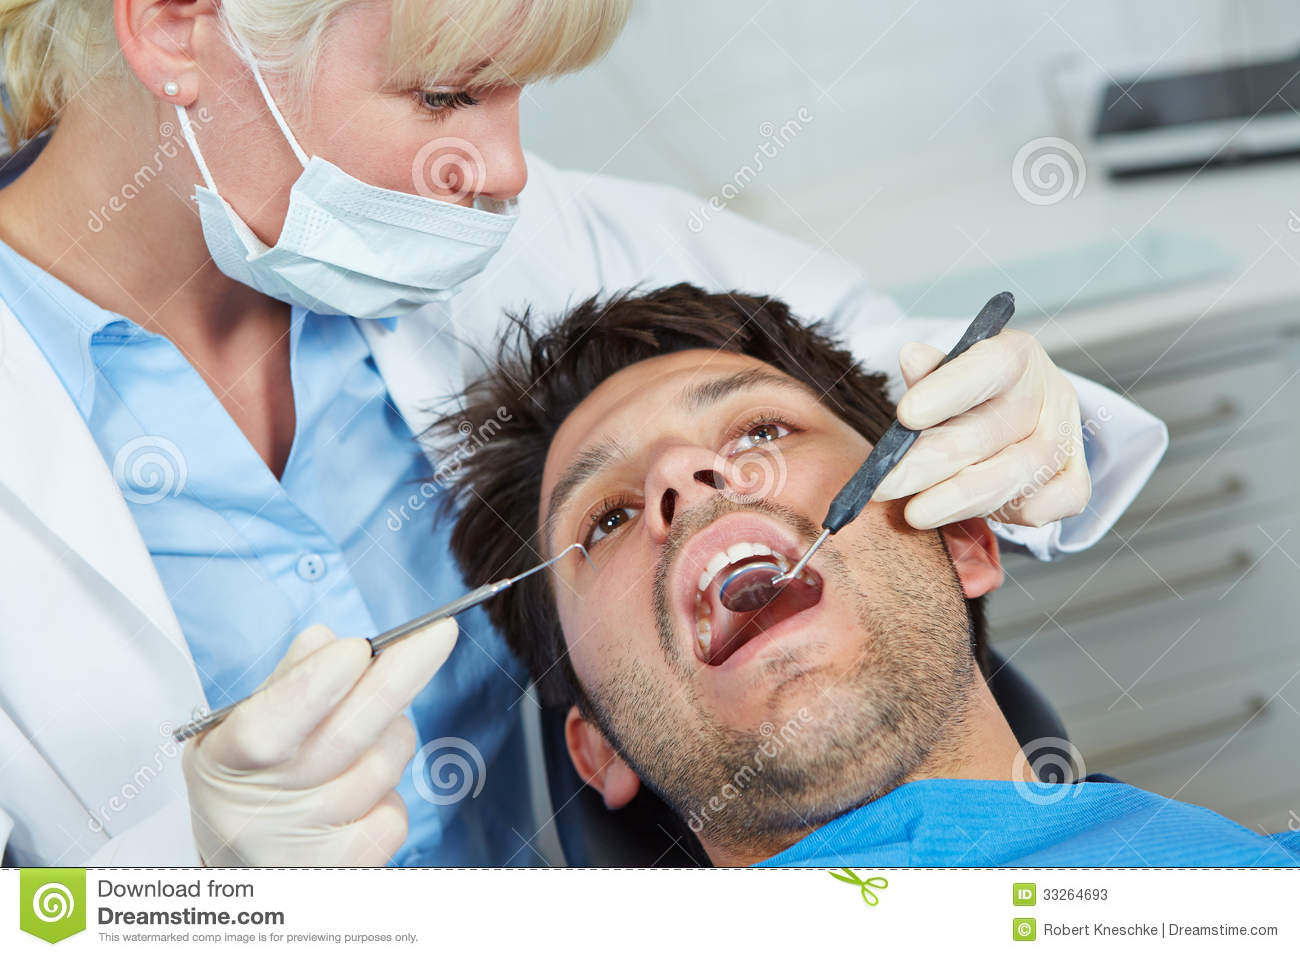 Dentist with mirror and probe